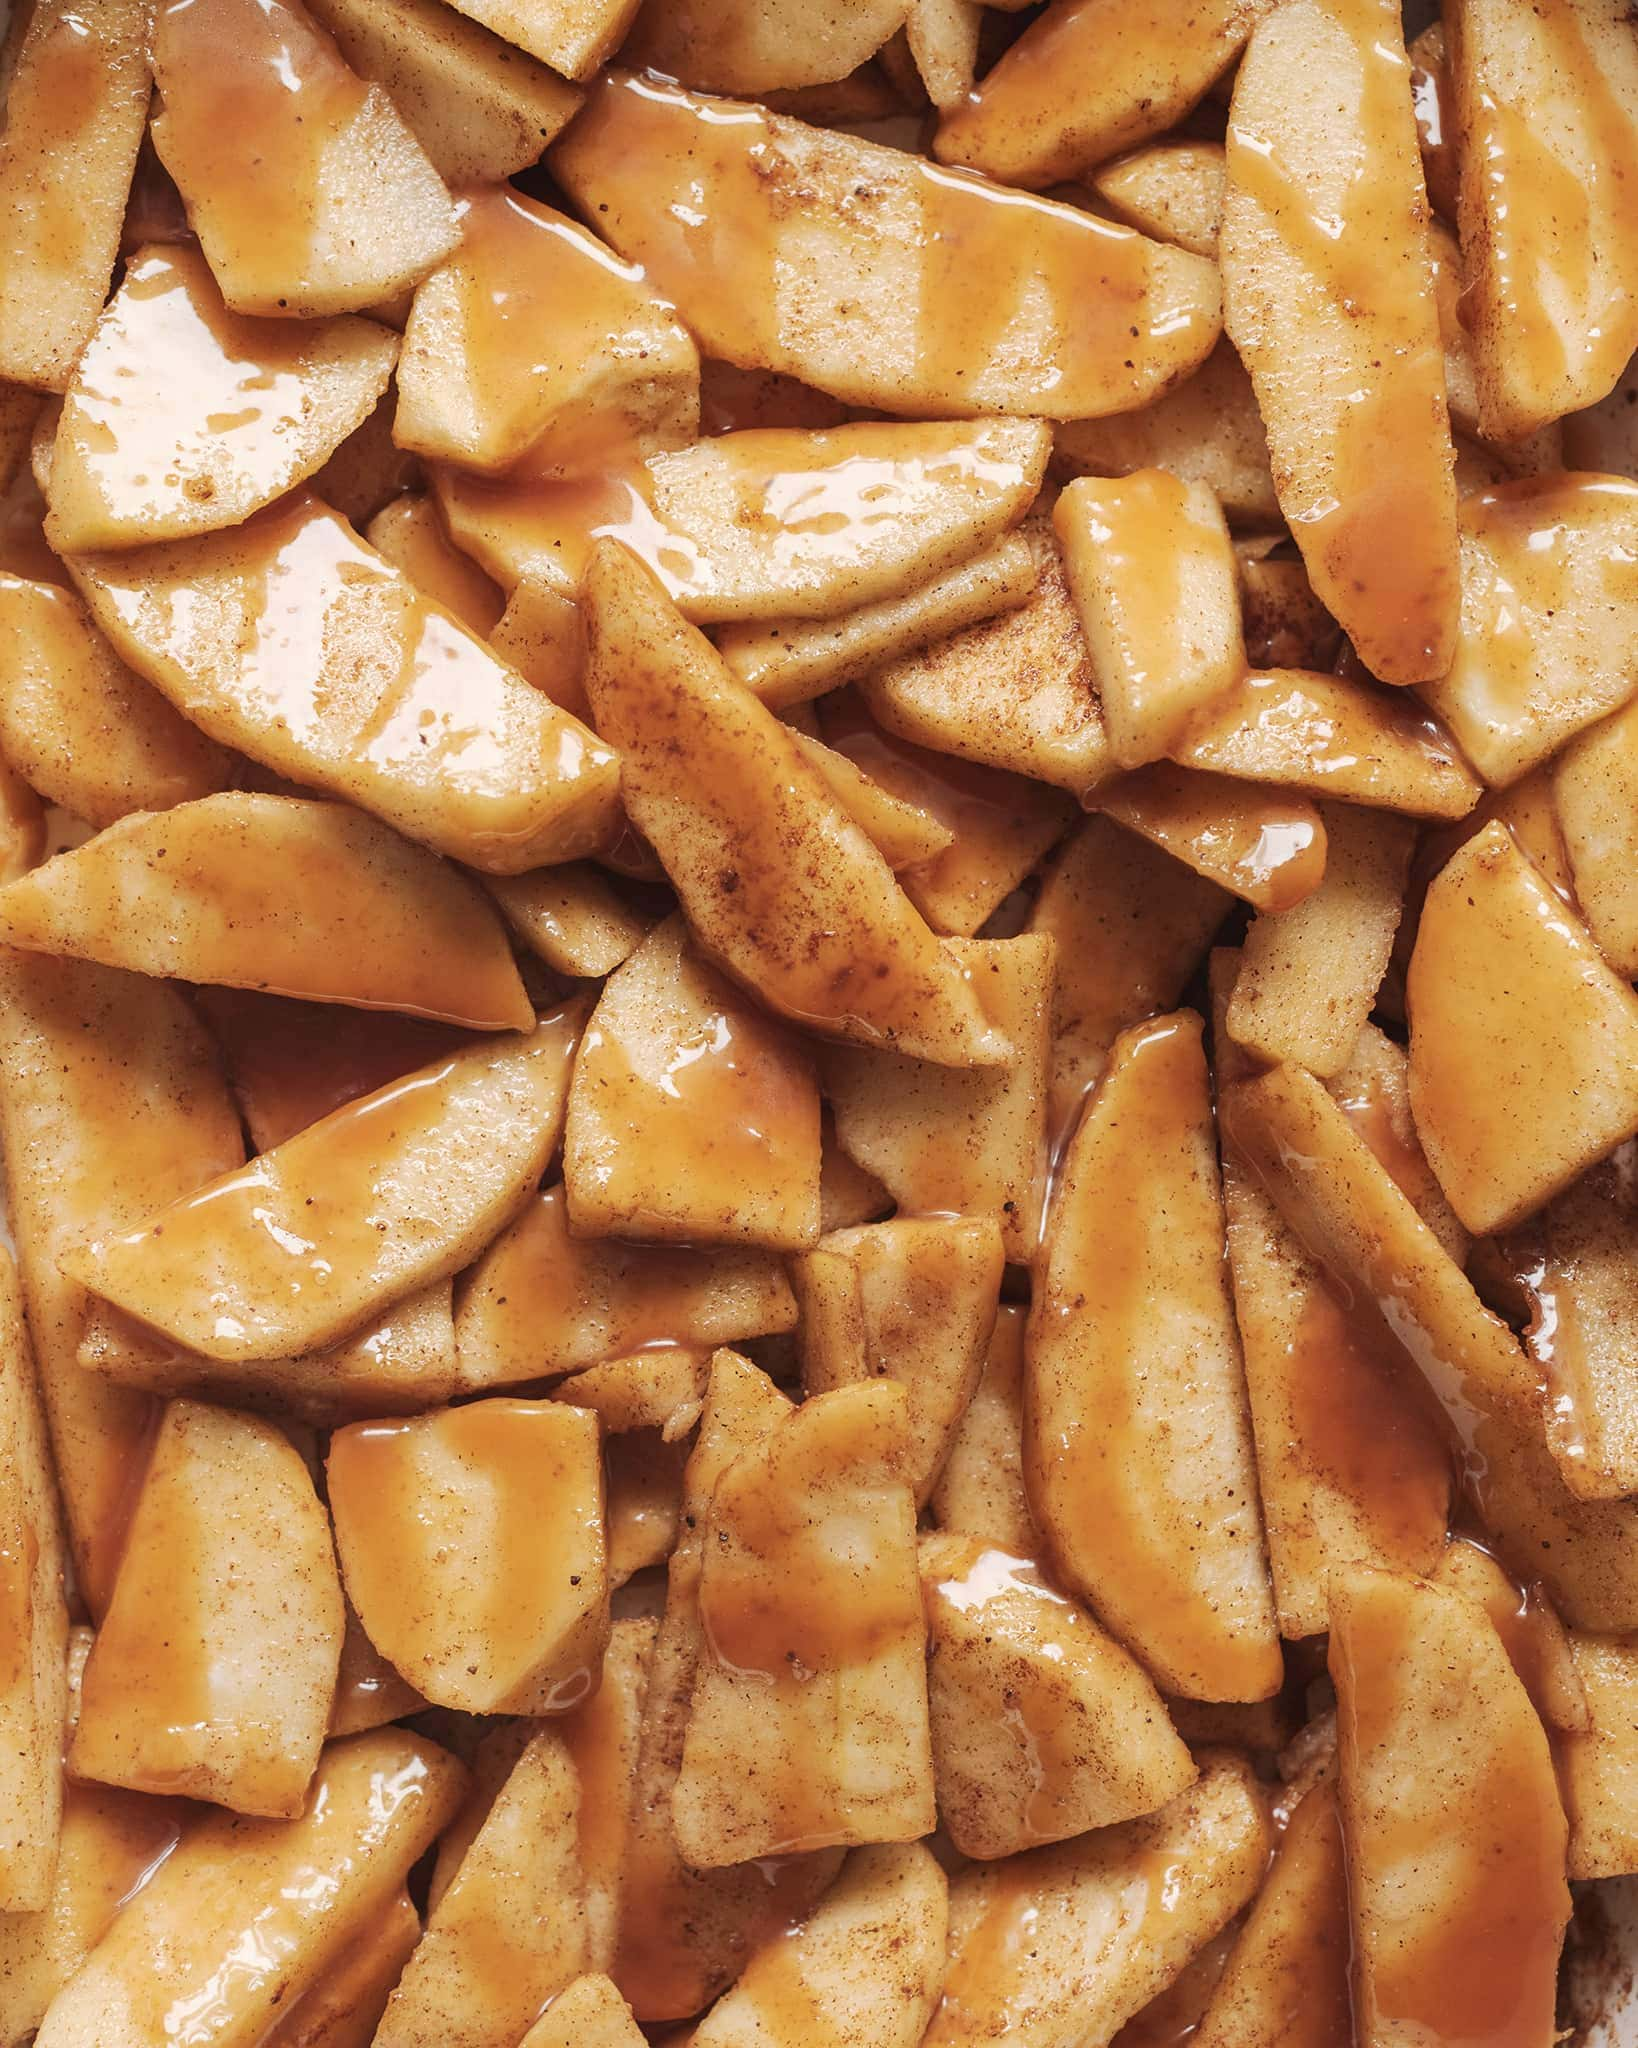 Apple slices drizzled with caramel sauce